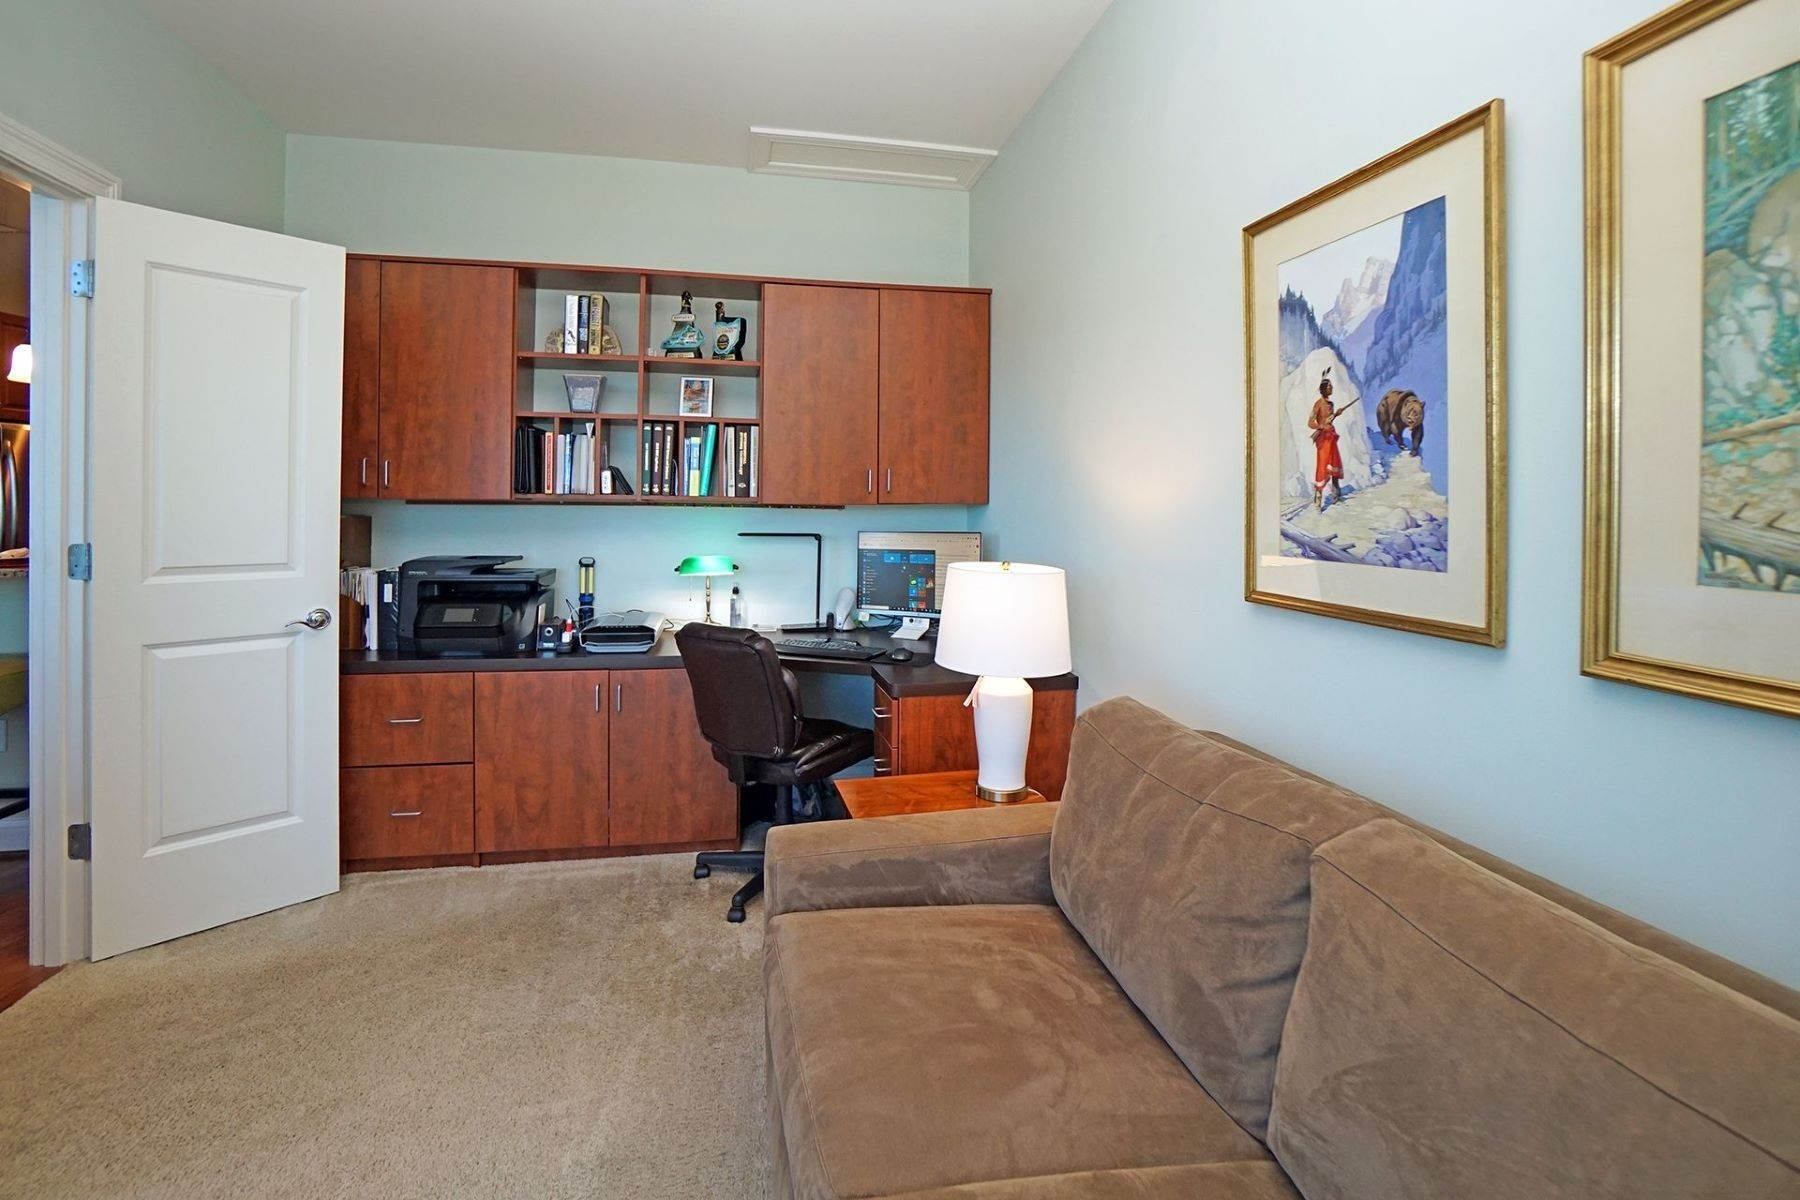 11. Condominiums for Sale at 1 Roebling Way #1105, Covington, KY 41011 1 Roebling Way #1105 Covington, Kentucky 41011 United States